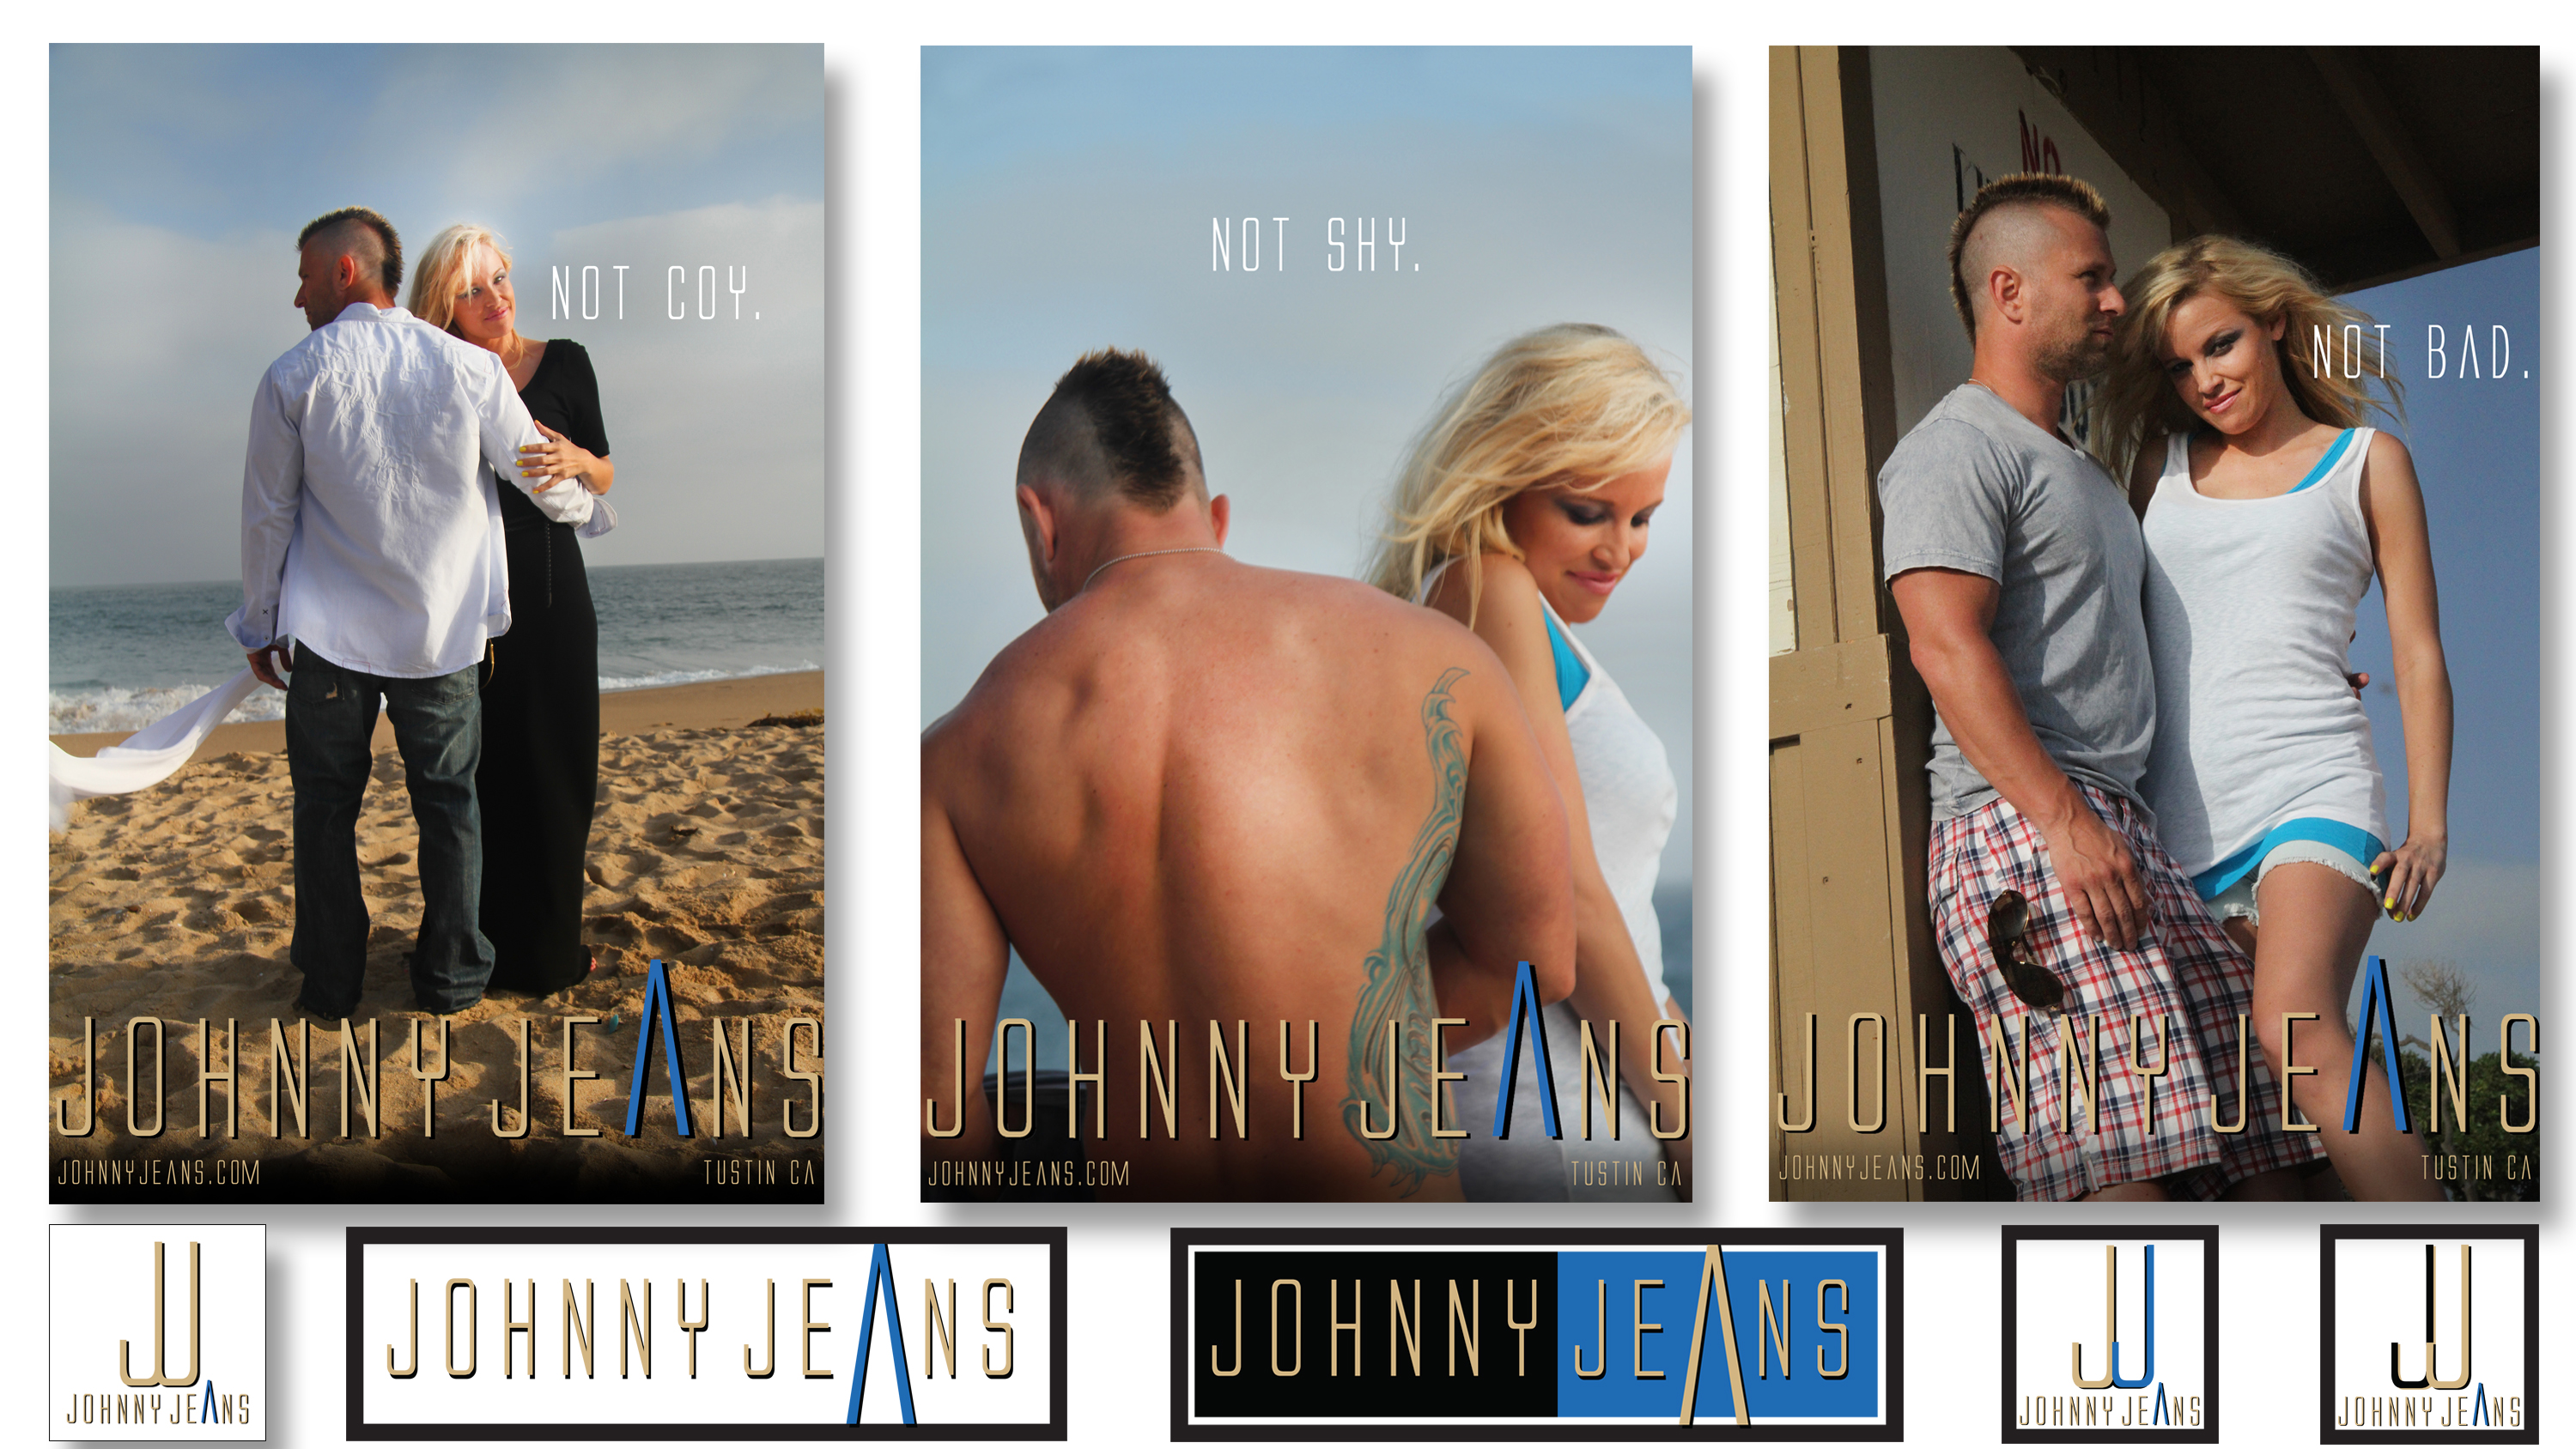 Johnny Jeans Fashion Image Ads, Branding and Logo